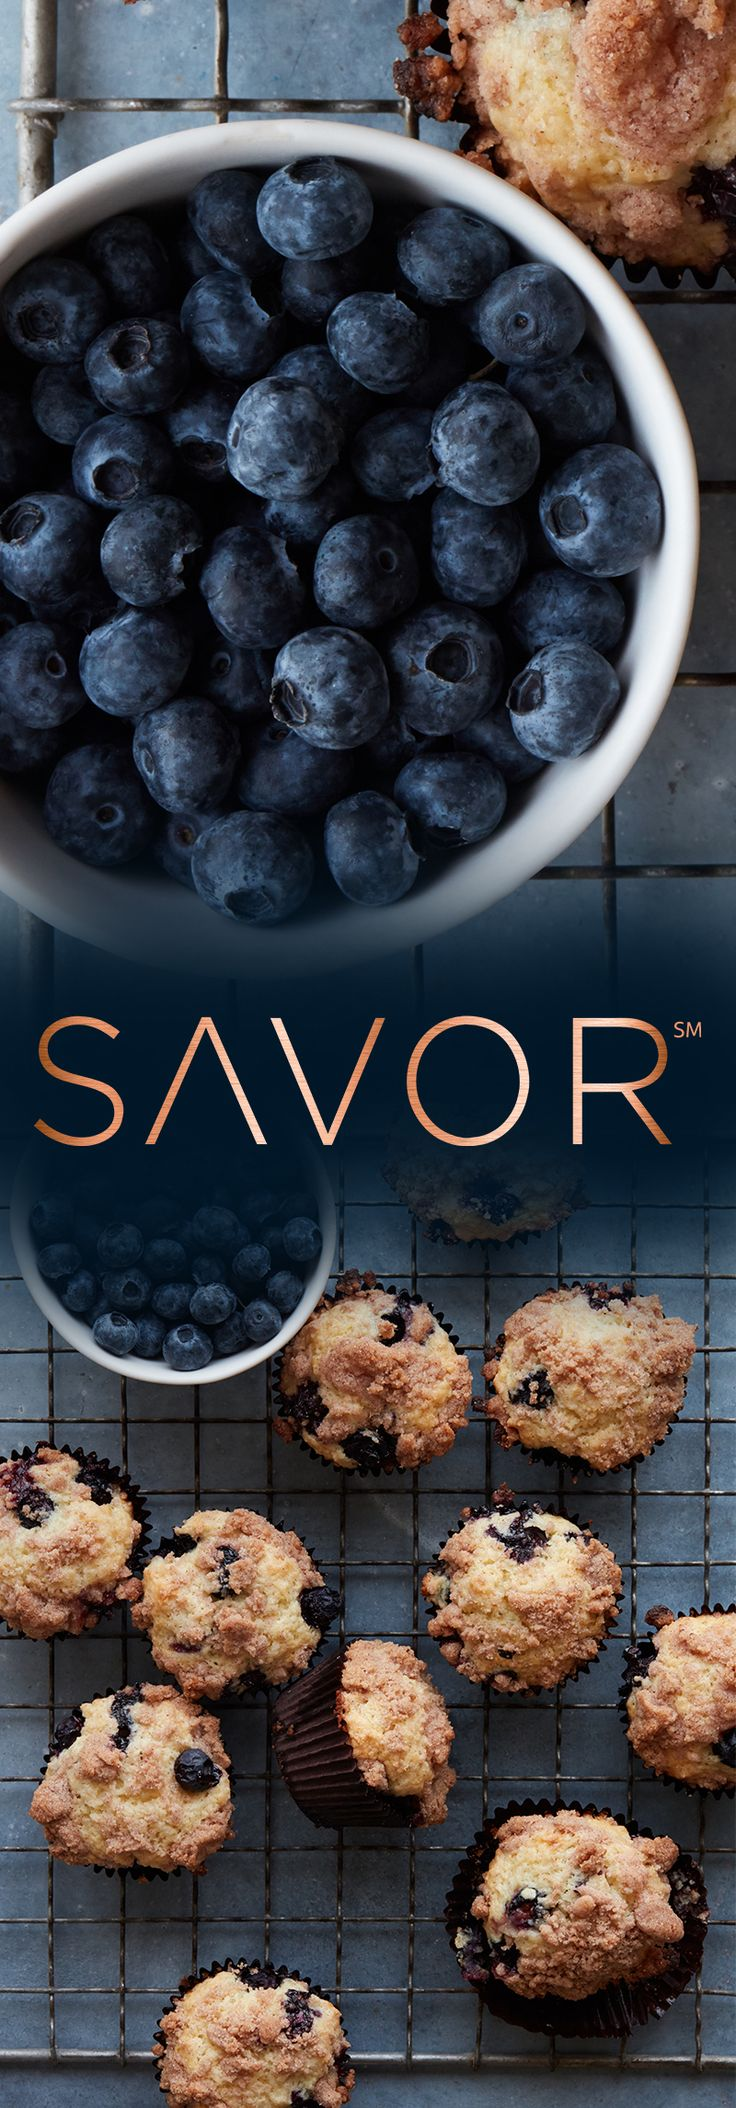 """Gaby Dalkin of @whatsgabycooking: """"Blueberry Streusel Muffins couldn't be more perfect for this time of year! Grab the recipe on the blog thanks to @CapitalOne and their new Savor credit card."""" #SavorMoments #ad"""